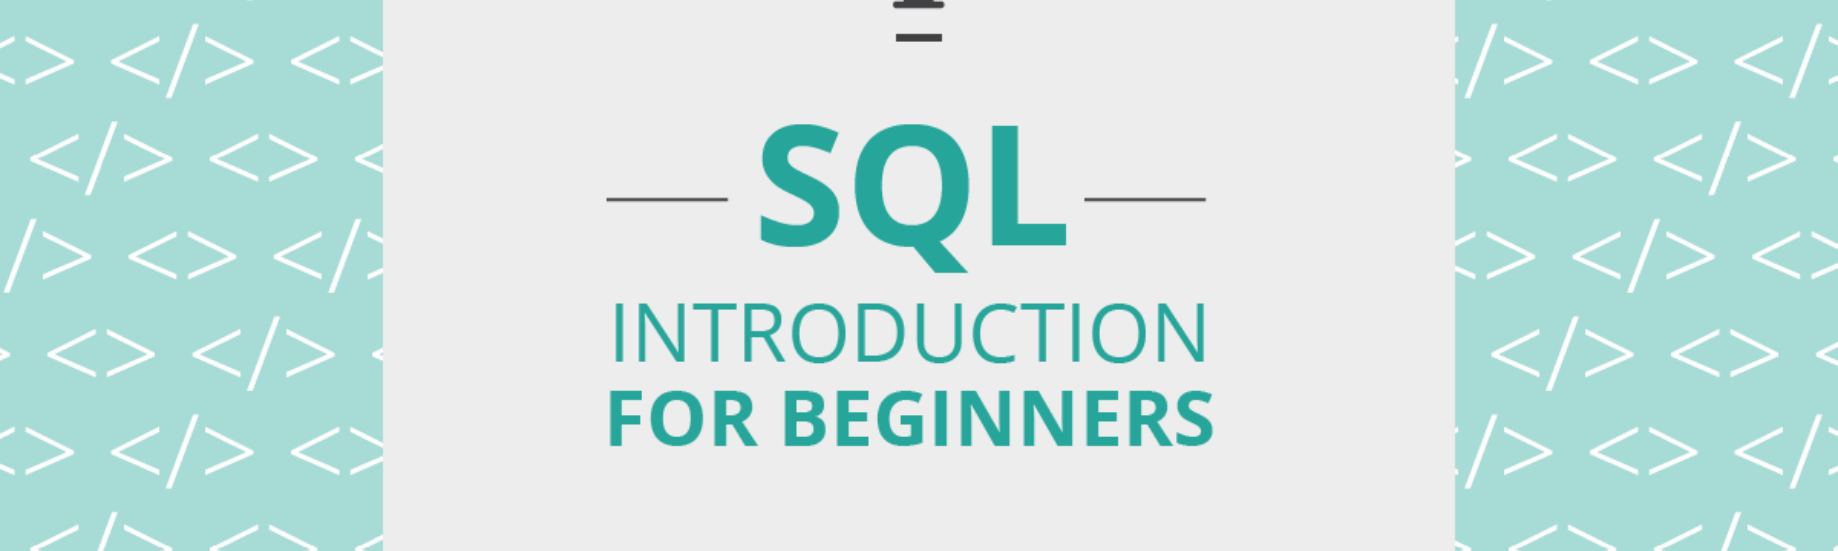 Beginning SQL script for Oracle SQL Developer | by Lê Thanh Tân | Analytics  Vidhya | Medium